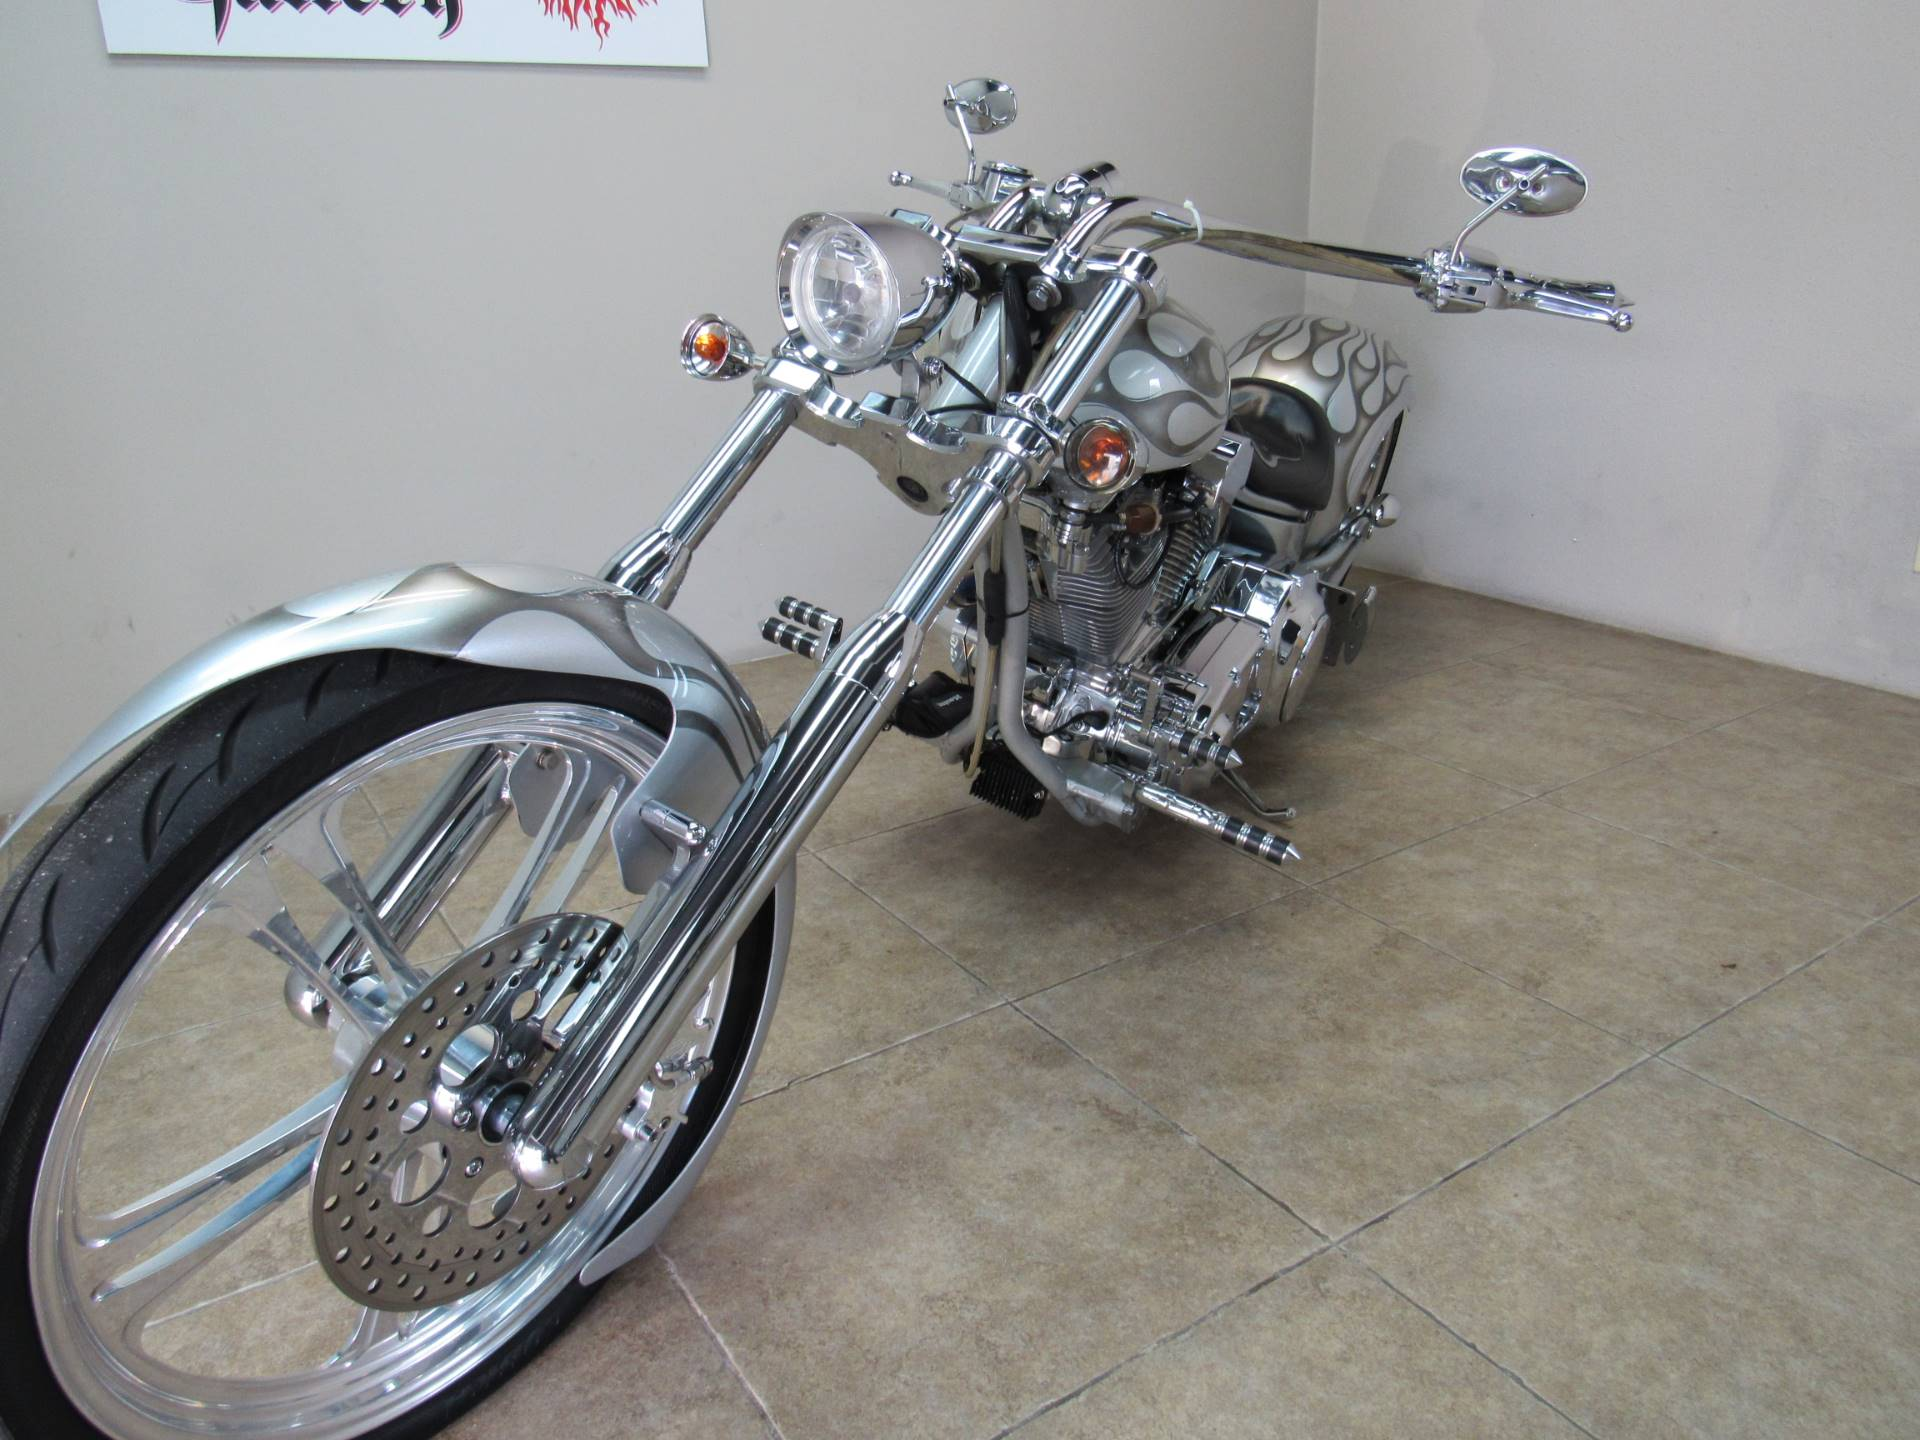 2006 Big Bear Choppers Sled Prostreet (CA) - [SLEDPROSTREET] - Silver in Temecula, California - Photo 18